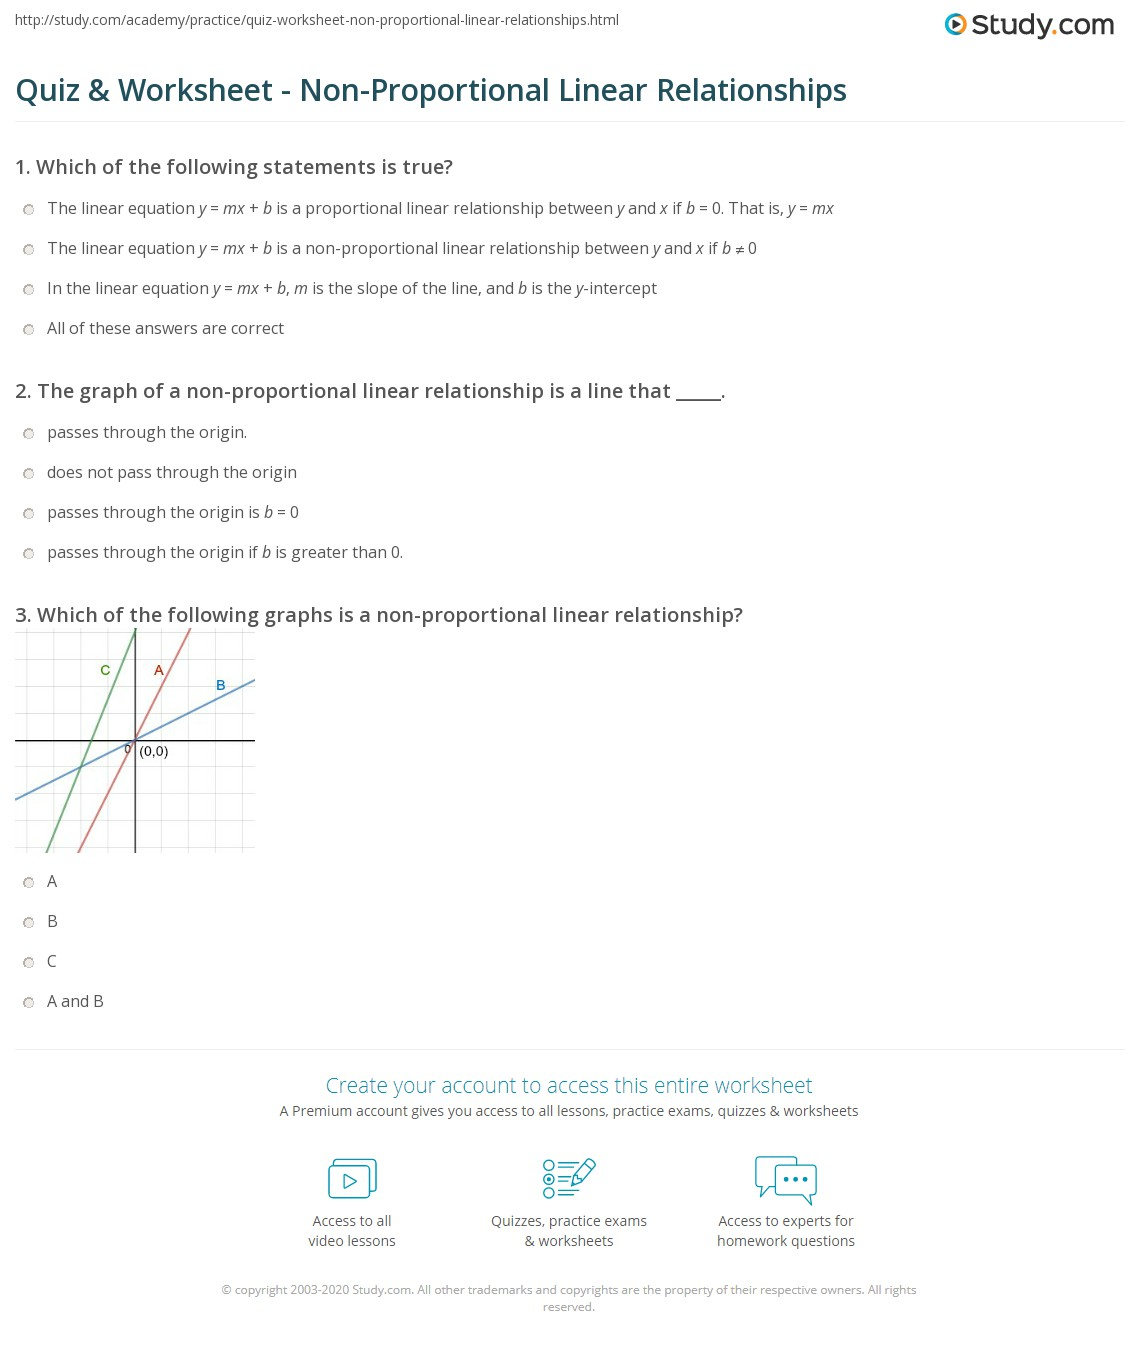 Quiz Worksheet Non Proportional Linear Relationships Study